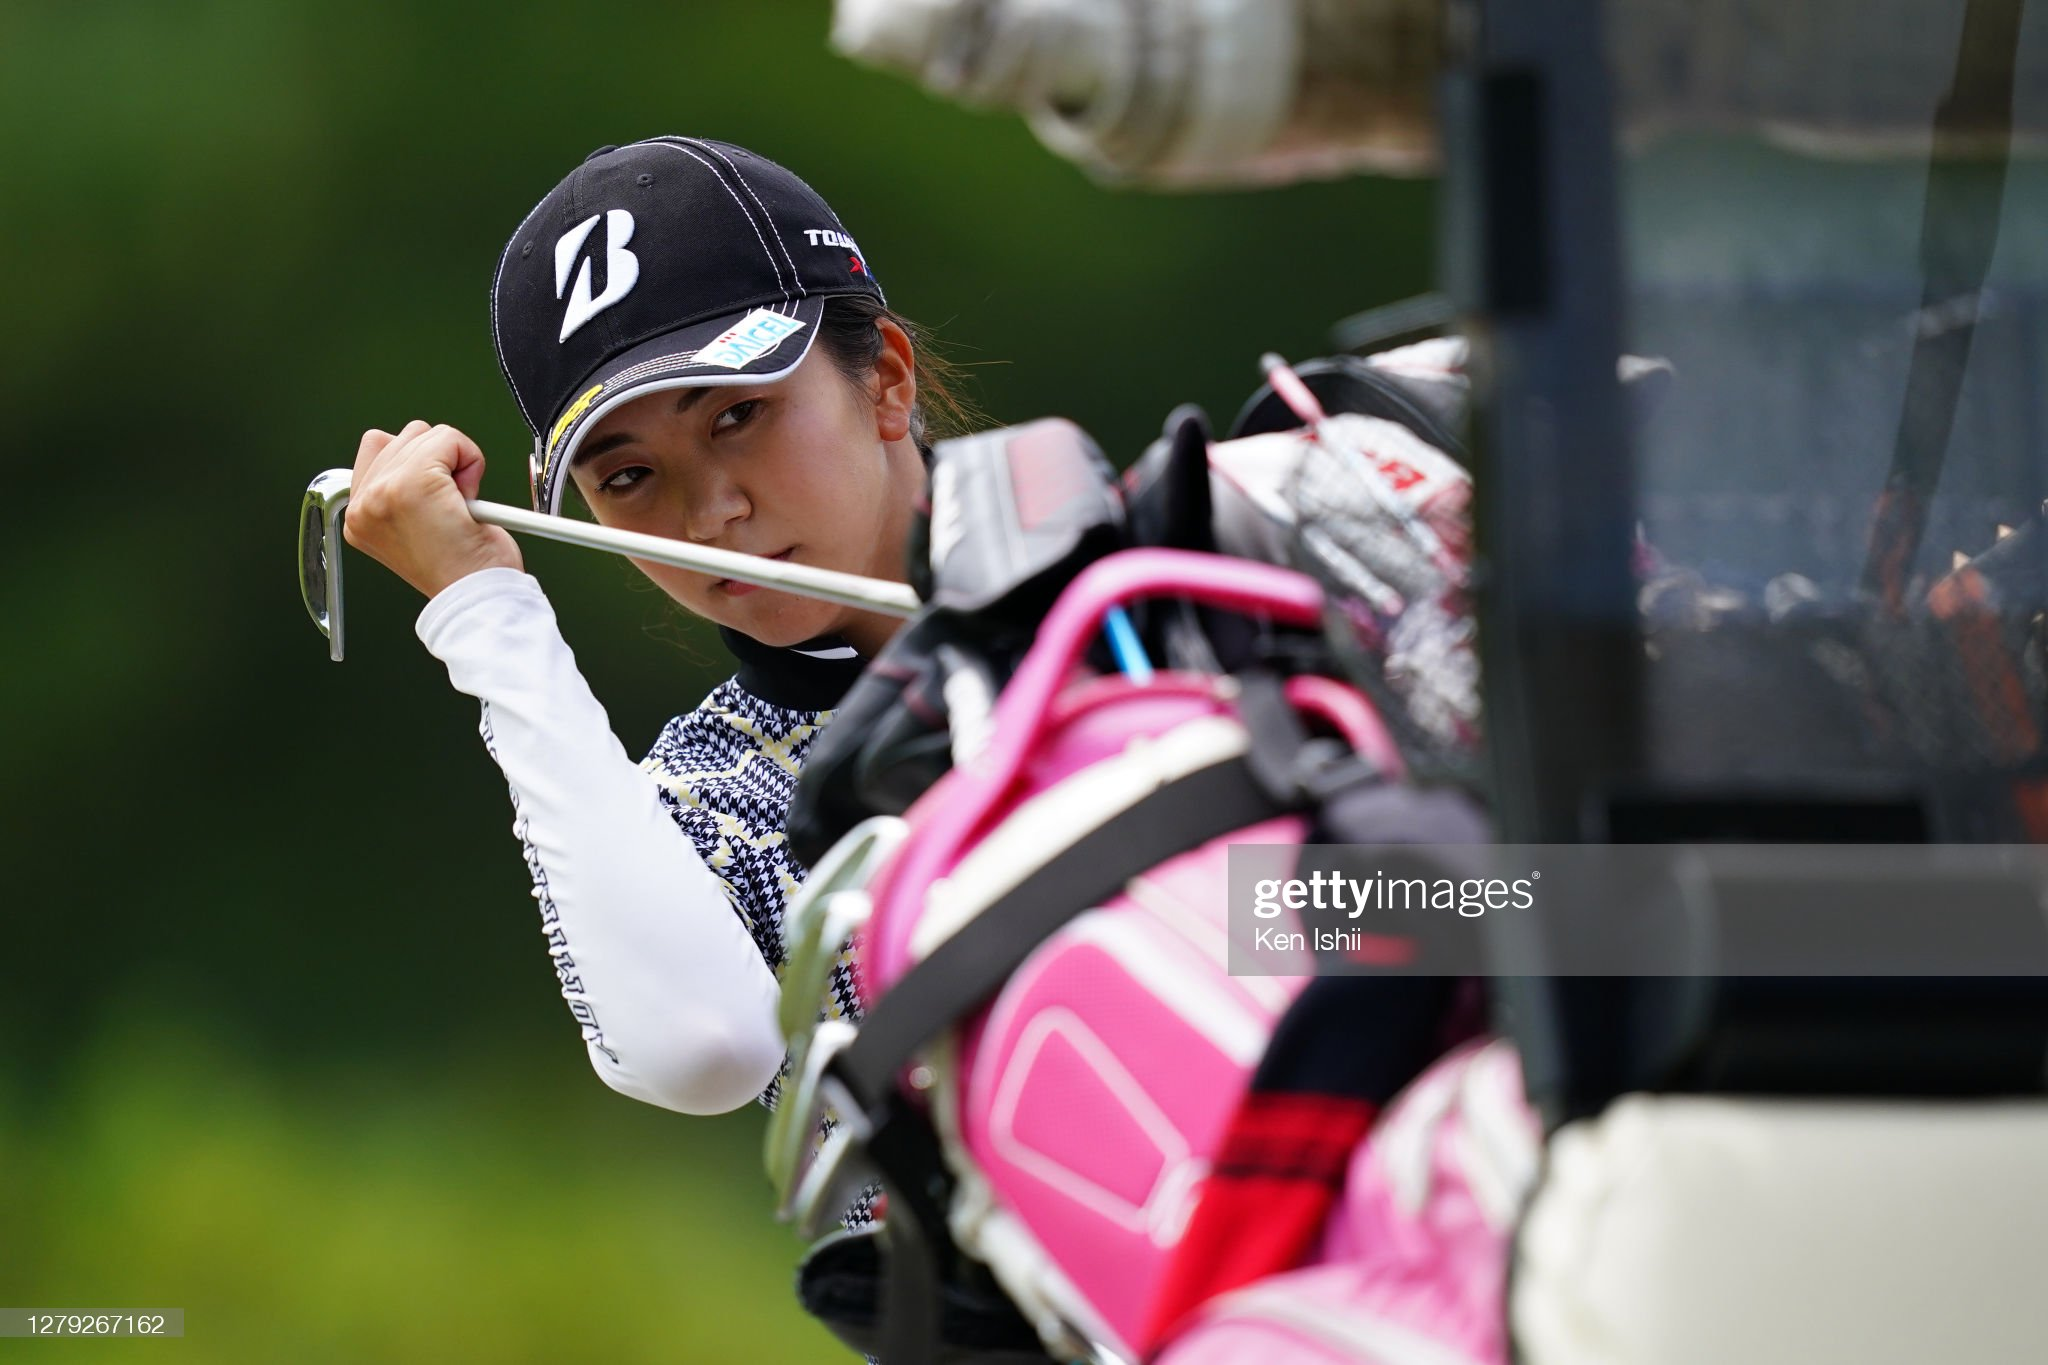 https://media.gettyimages.com/photos/kotone-hori-of-japan-is-seen-on-the-9th-hole-during-the-second-round-picture-id1279267162?s=2048x2048